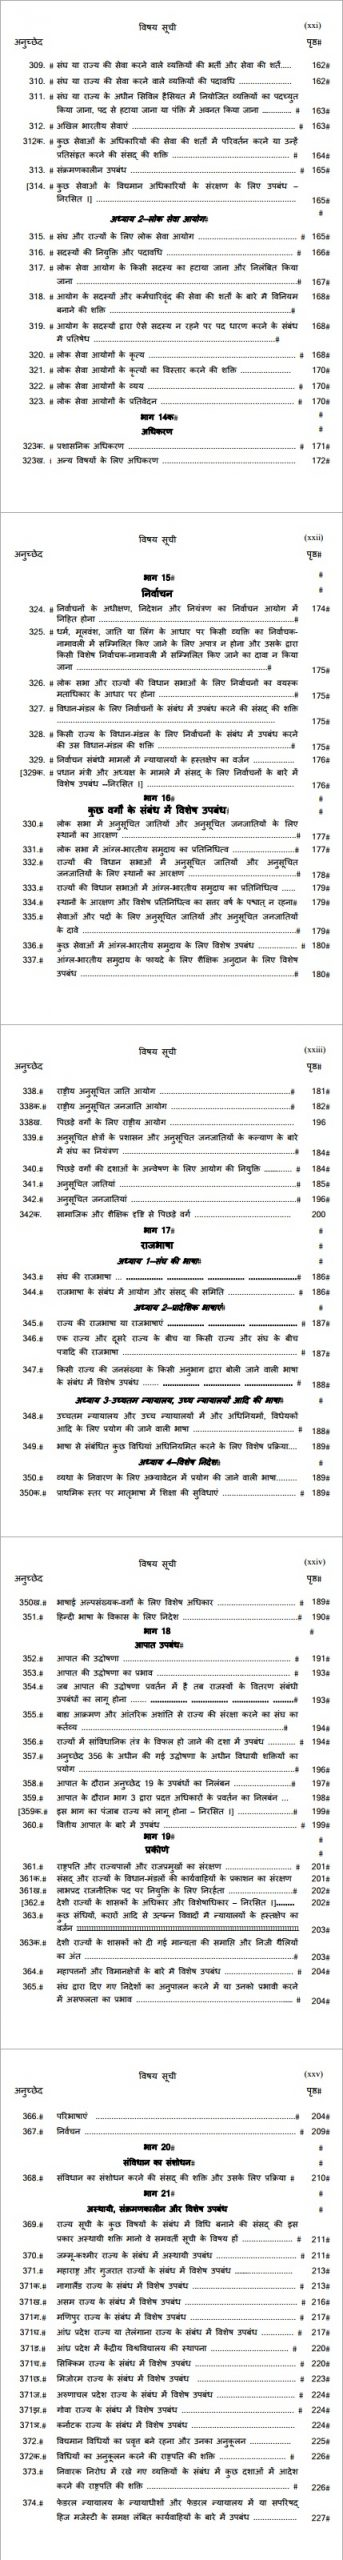 Articles 309 to 374 in Hindi